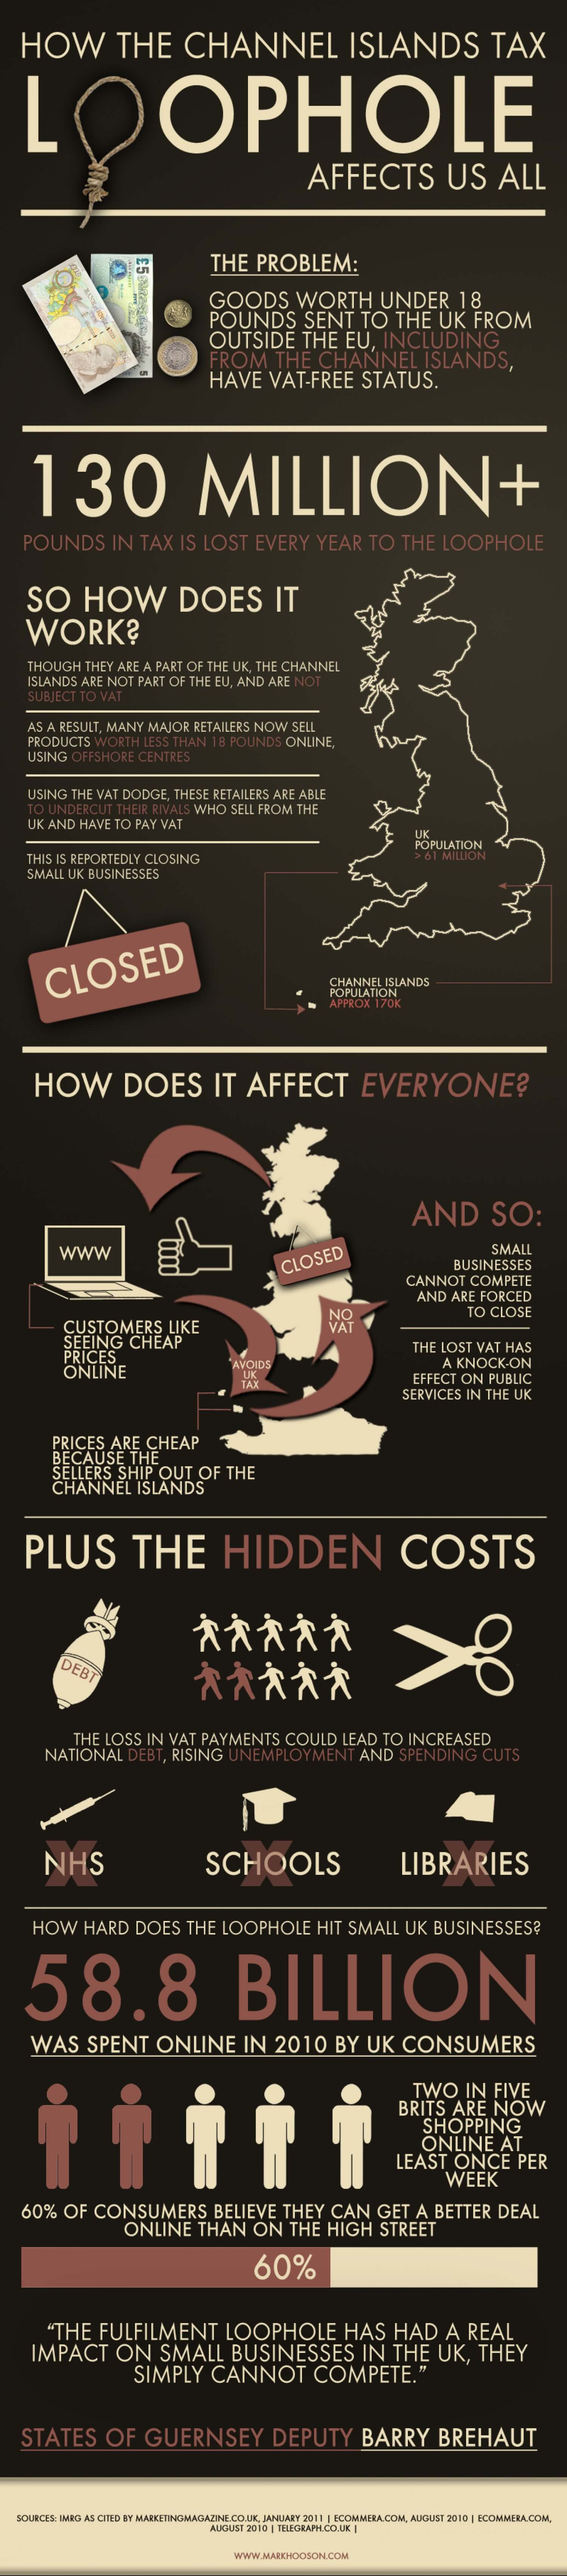 Tax Loopholes and Small Businesses in the UK